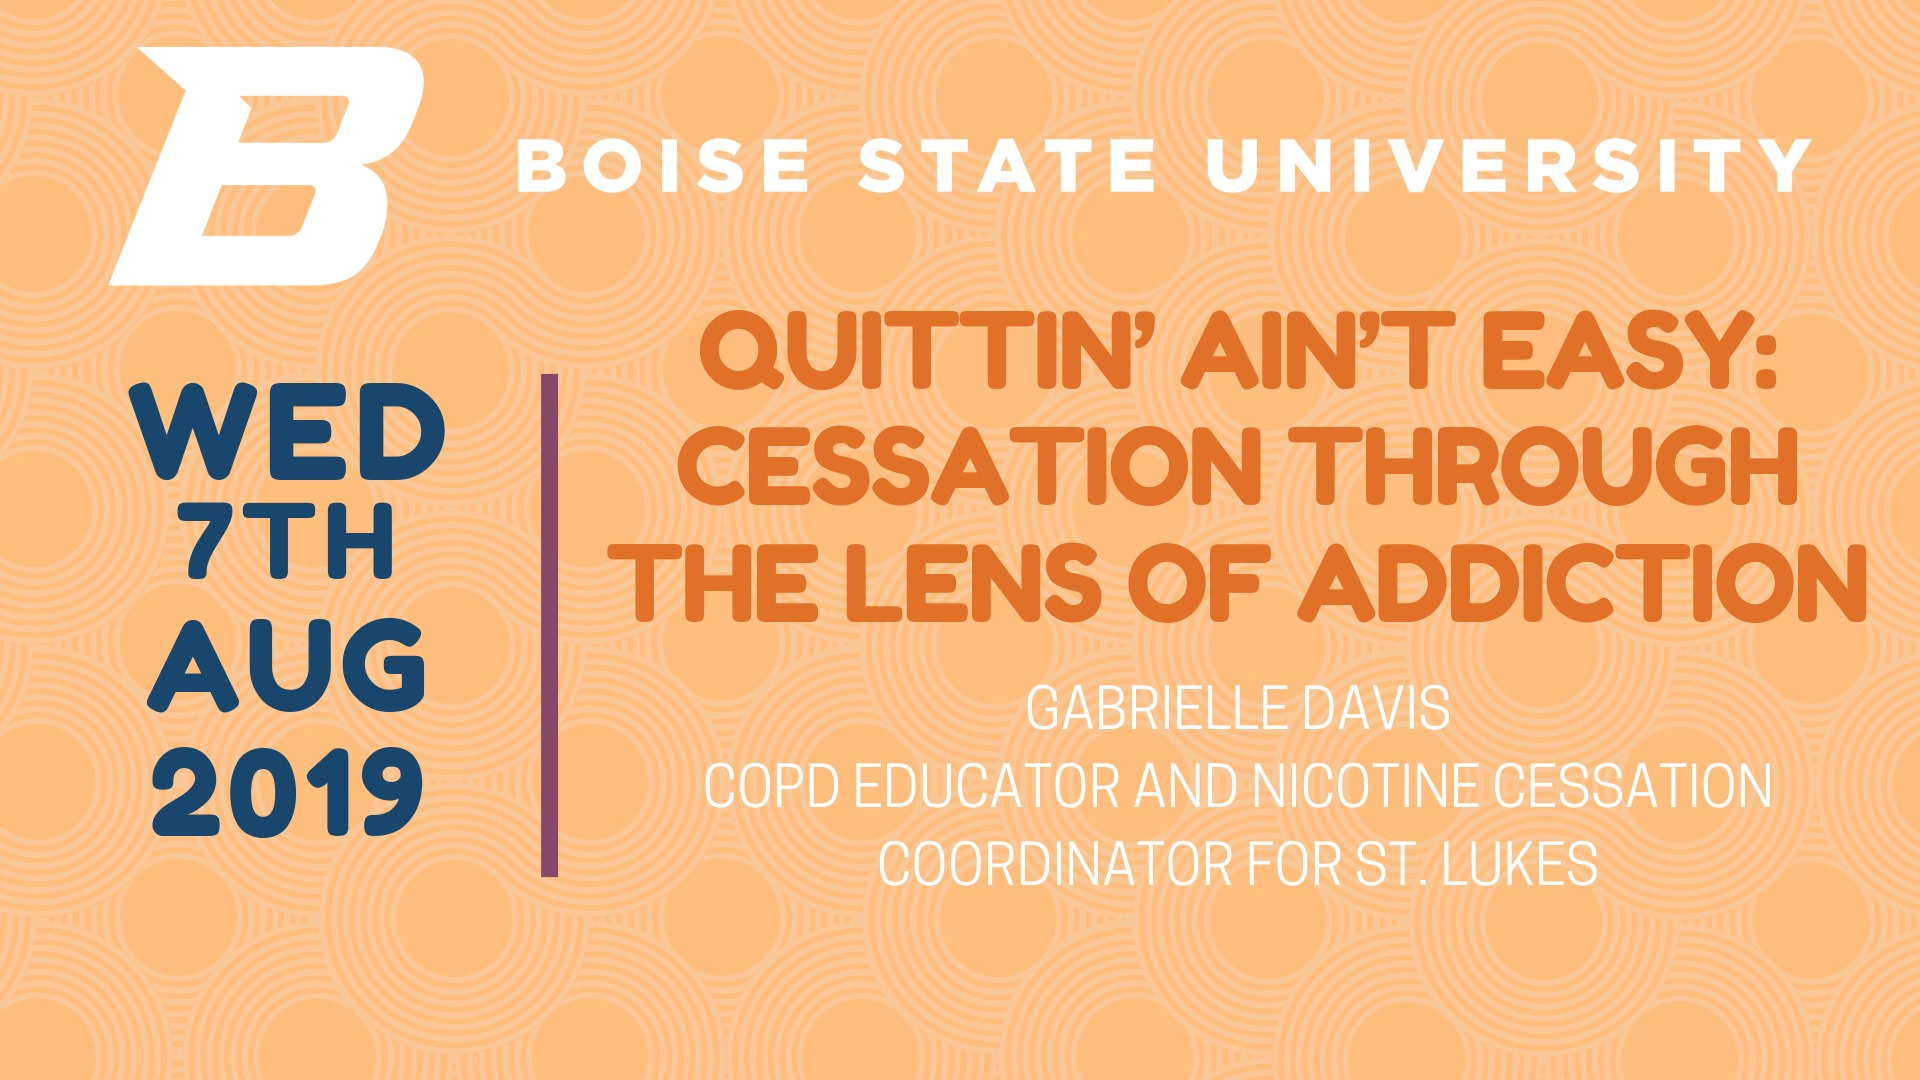 """Graphic that reads: """"Quittin' Ain't Easy"""": Cessation Through the Lens of Addiction on Wed Aug 7th 2019, Gabrielle Davis COPD Educator and Nicotine Cessation Coordinator for St. Luke's"""